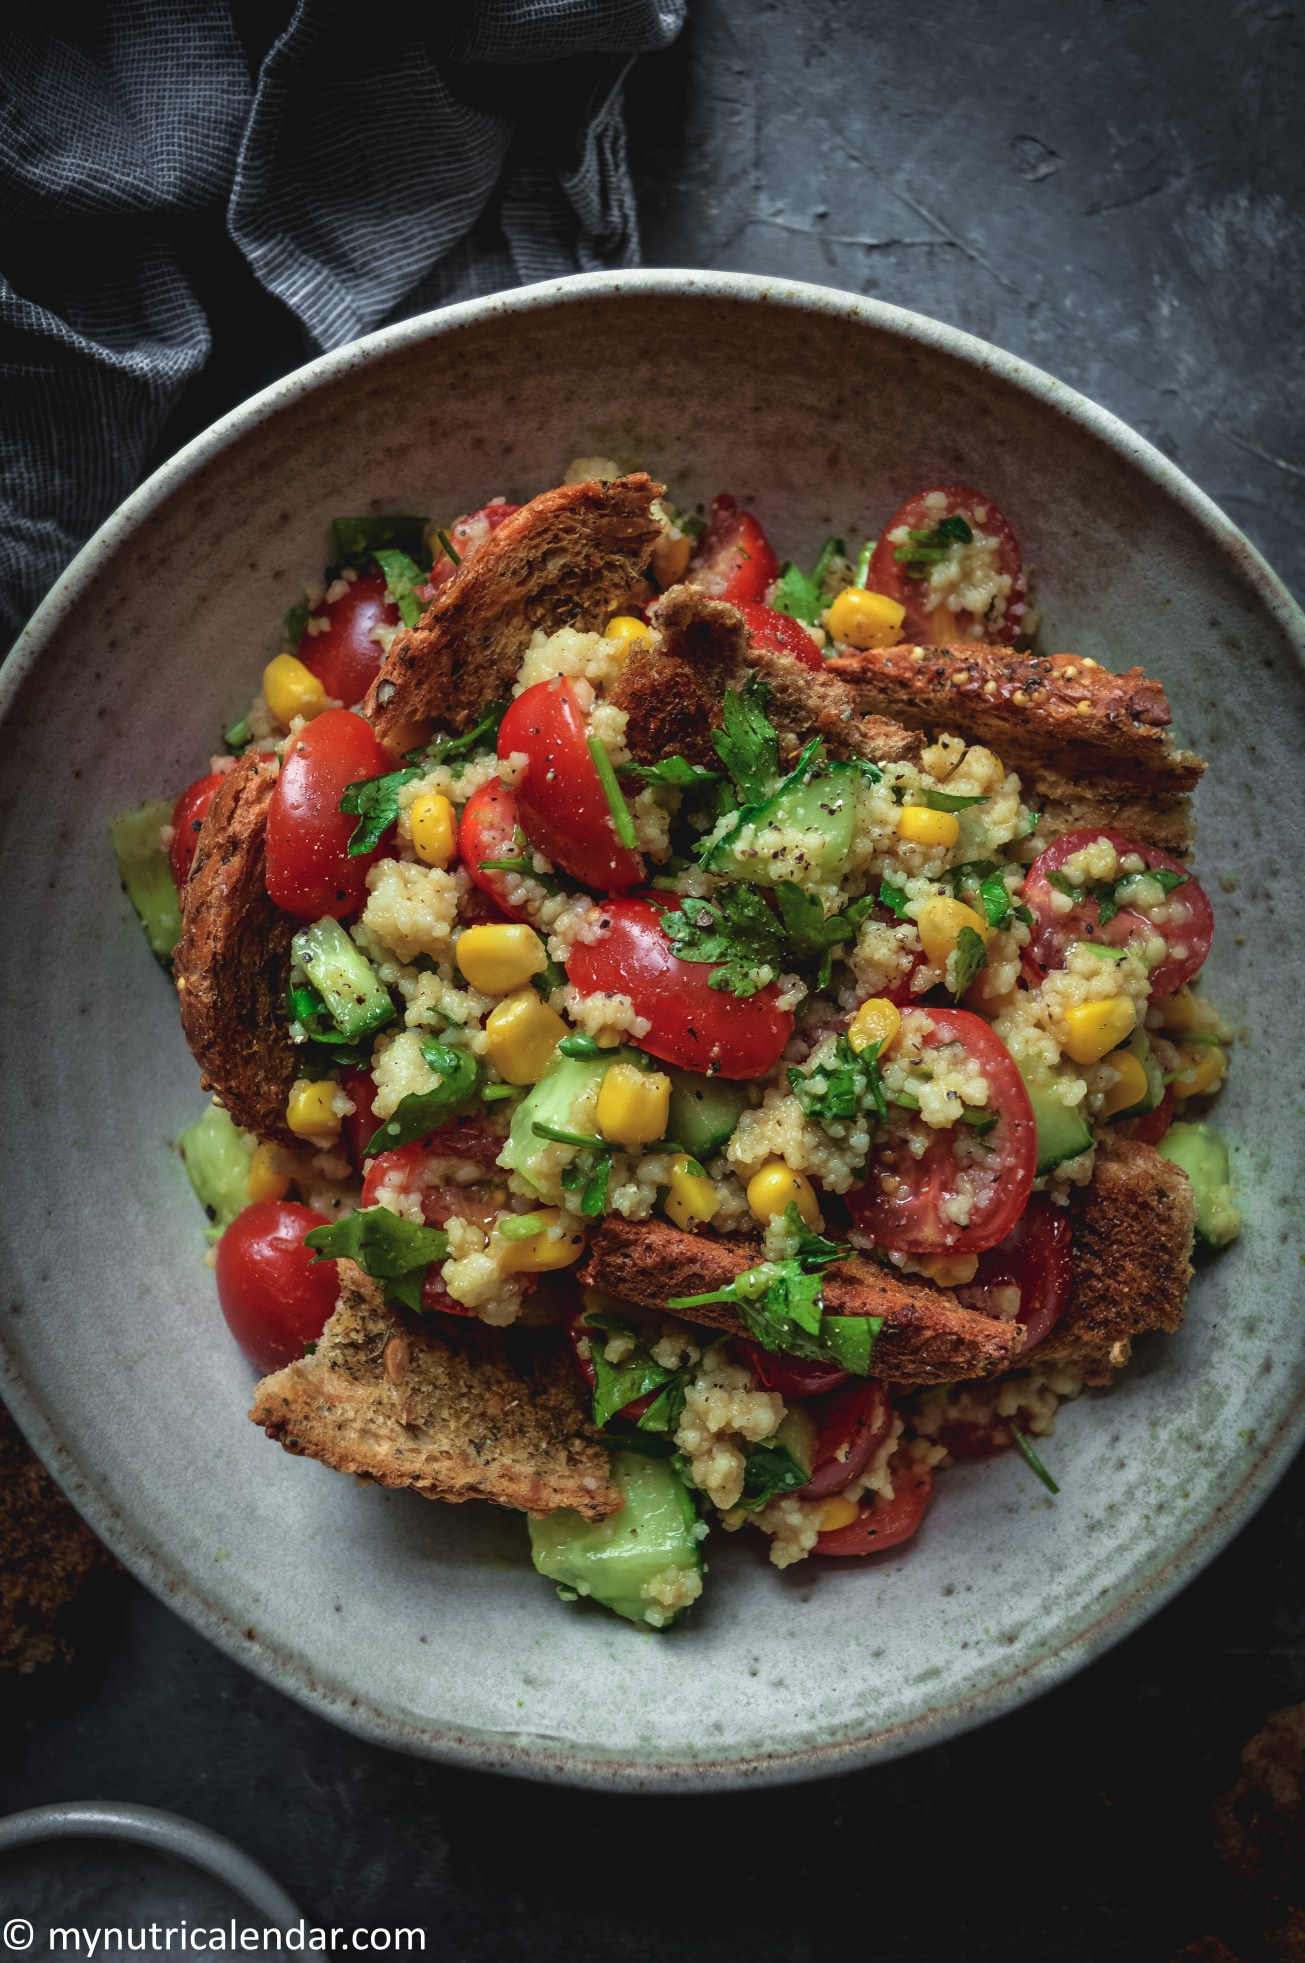 couscous corn salad with garlic bread leftovers 4